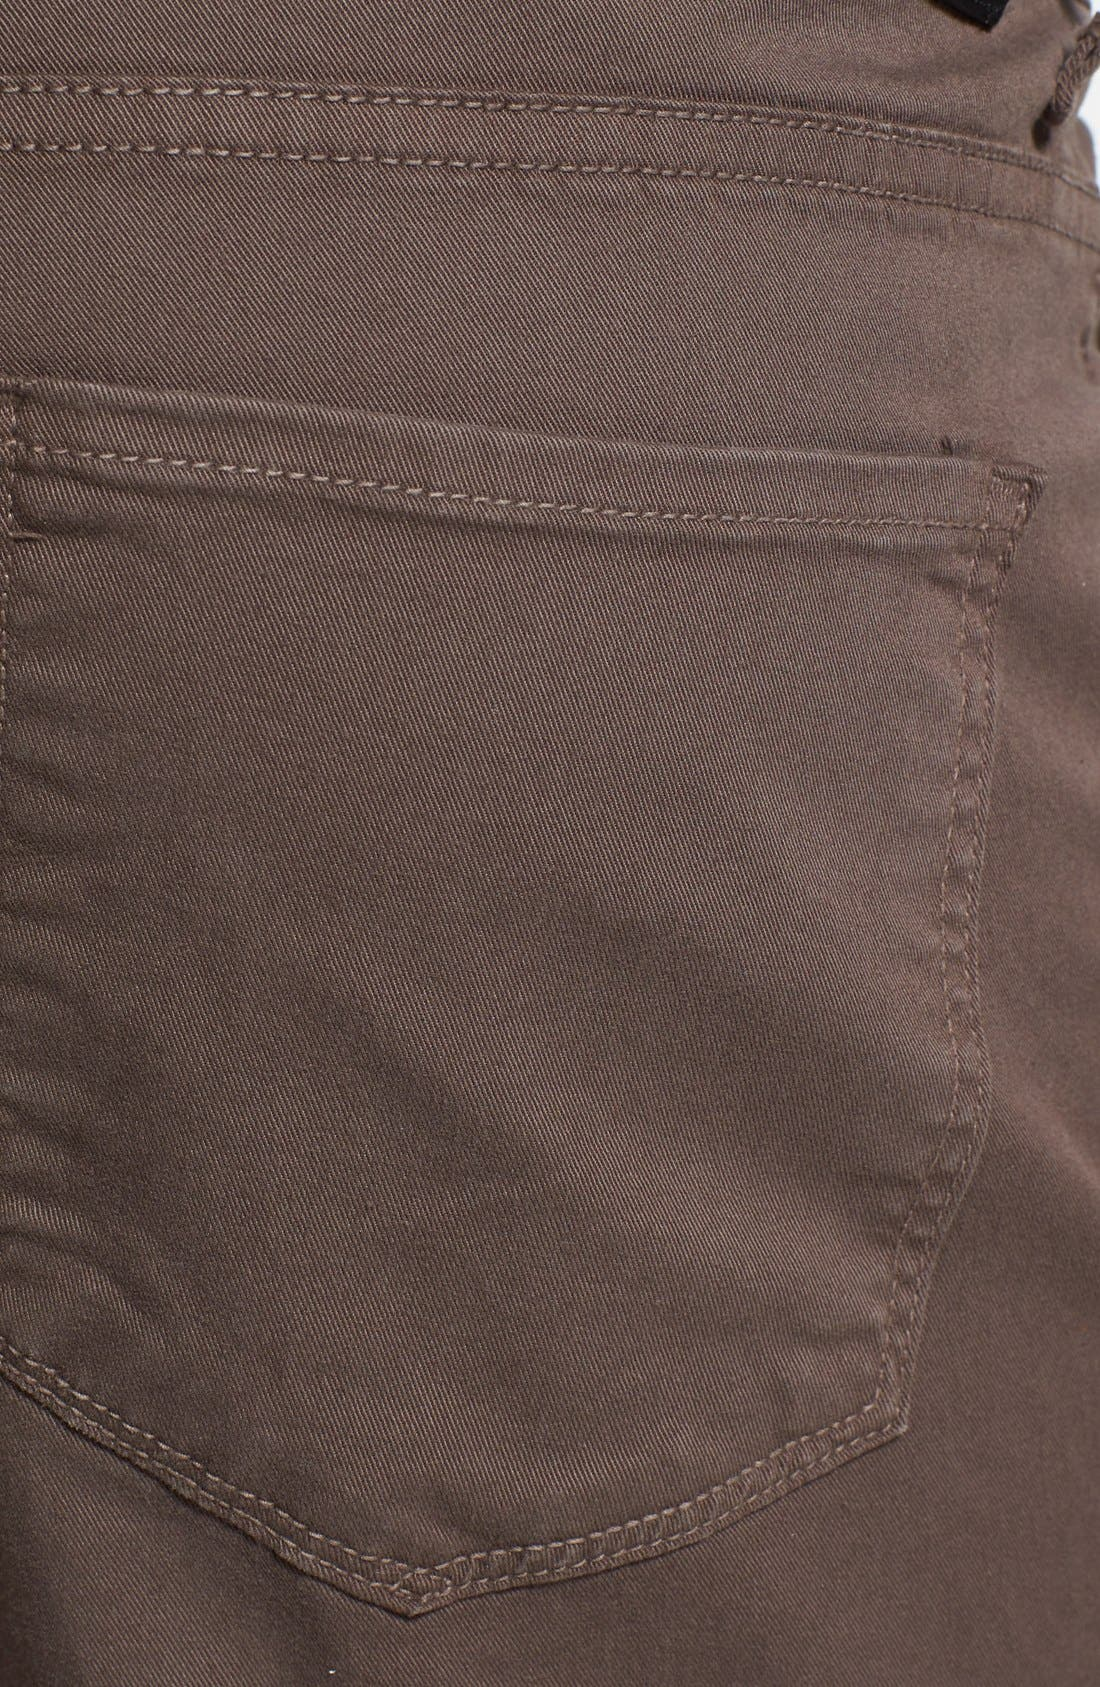 Normandie Slim Straight Leg Twill Pants,                             Alternate thumbnail 25, color,